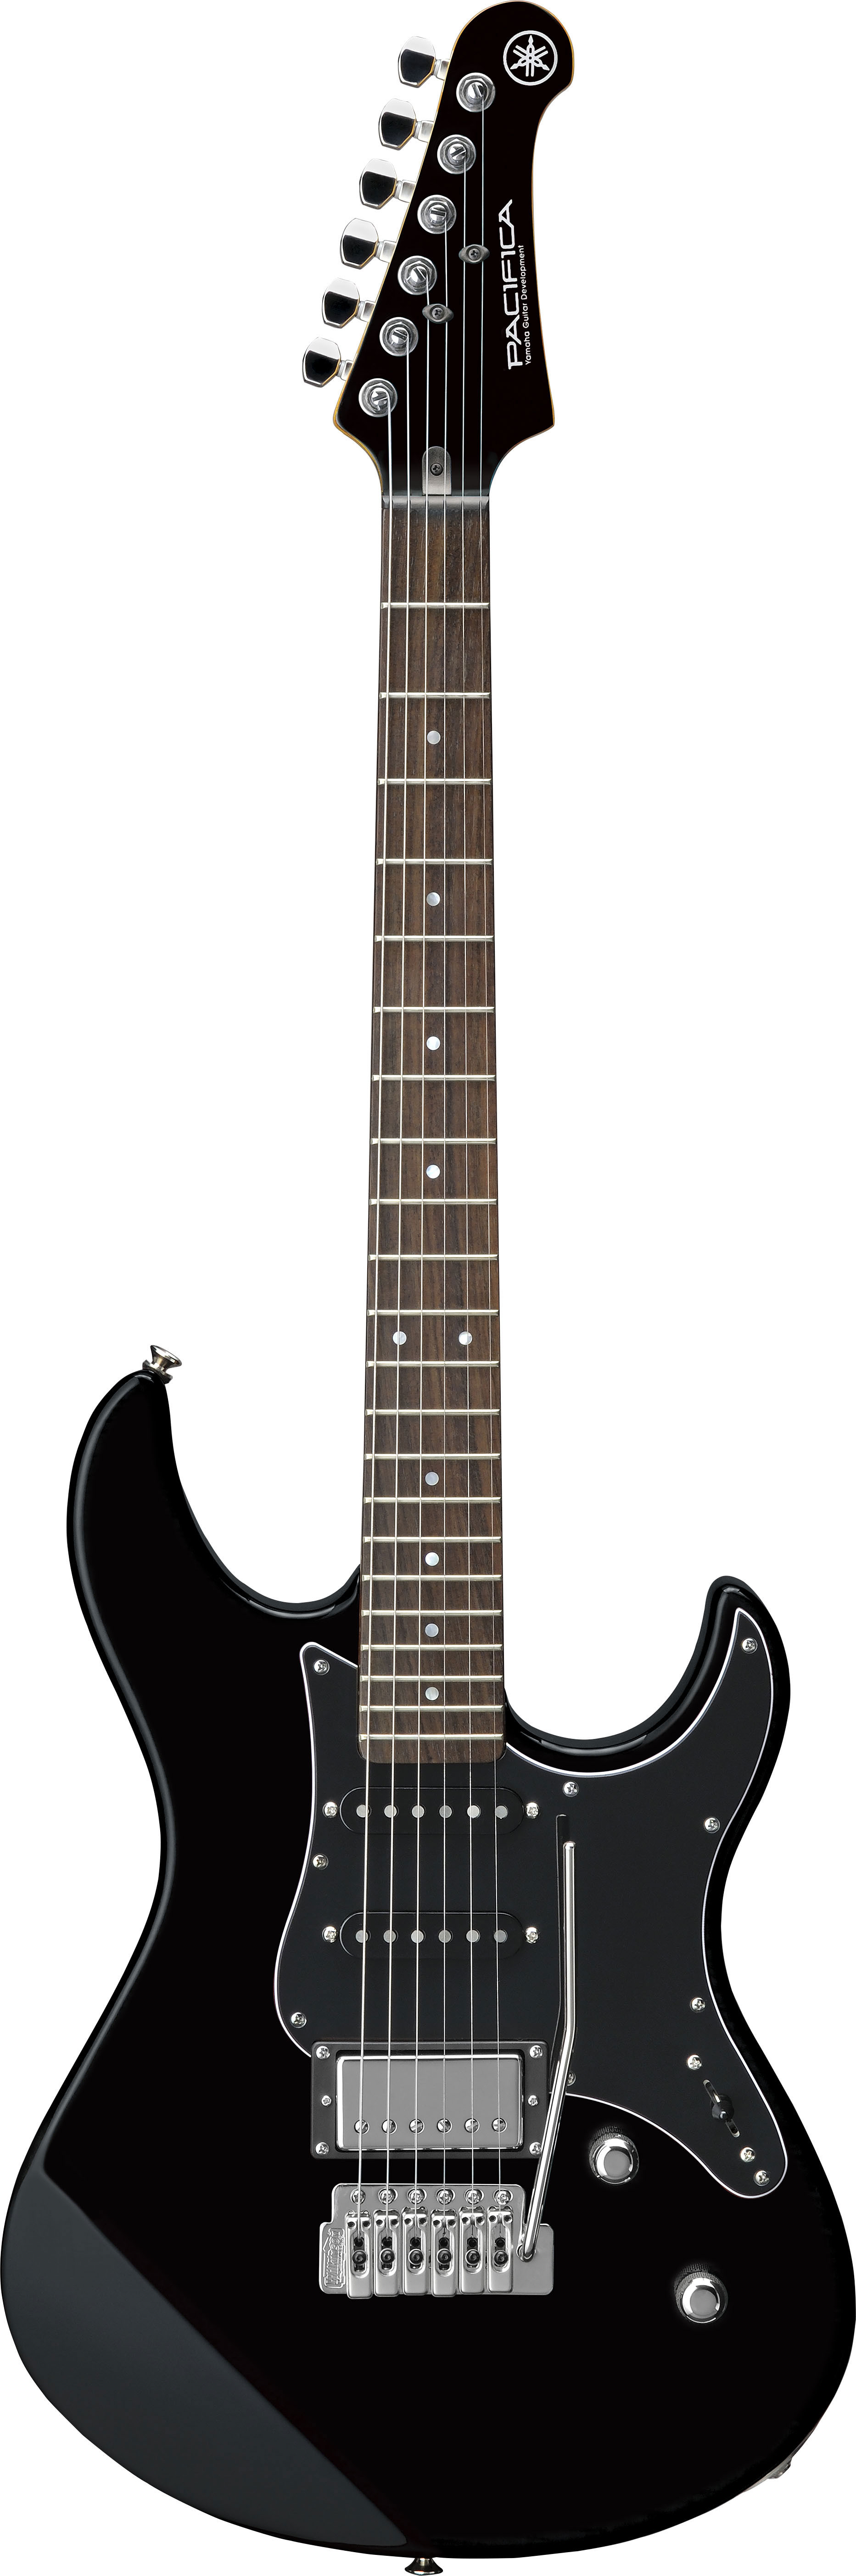 yamaha pacifica 612v mk ii electric guitar in solid black finish with black scratchplate. Black Bedroom Furniture Sets. Home Design Ideas